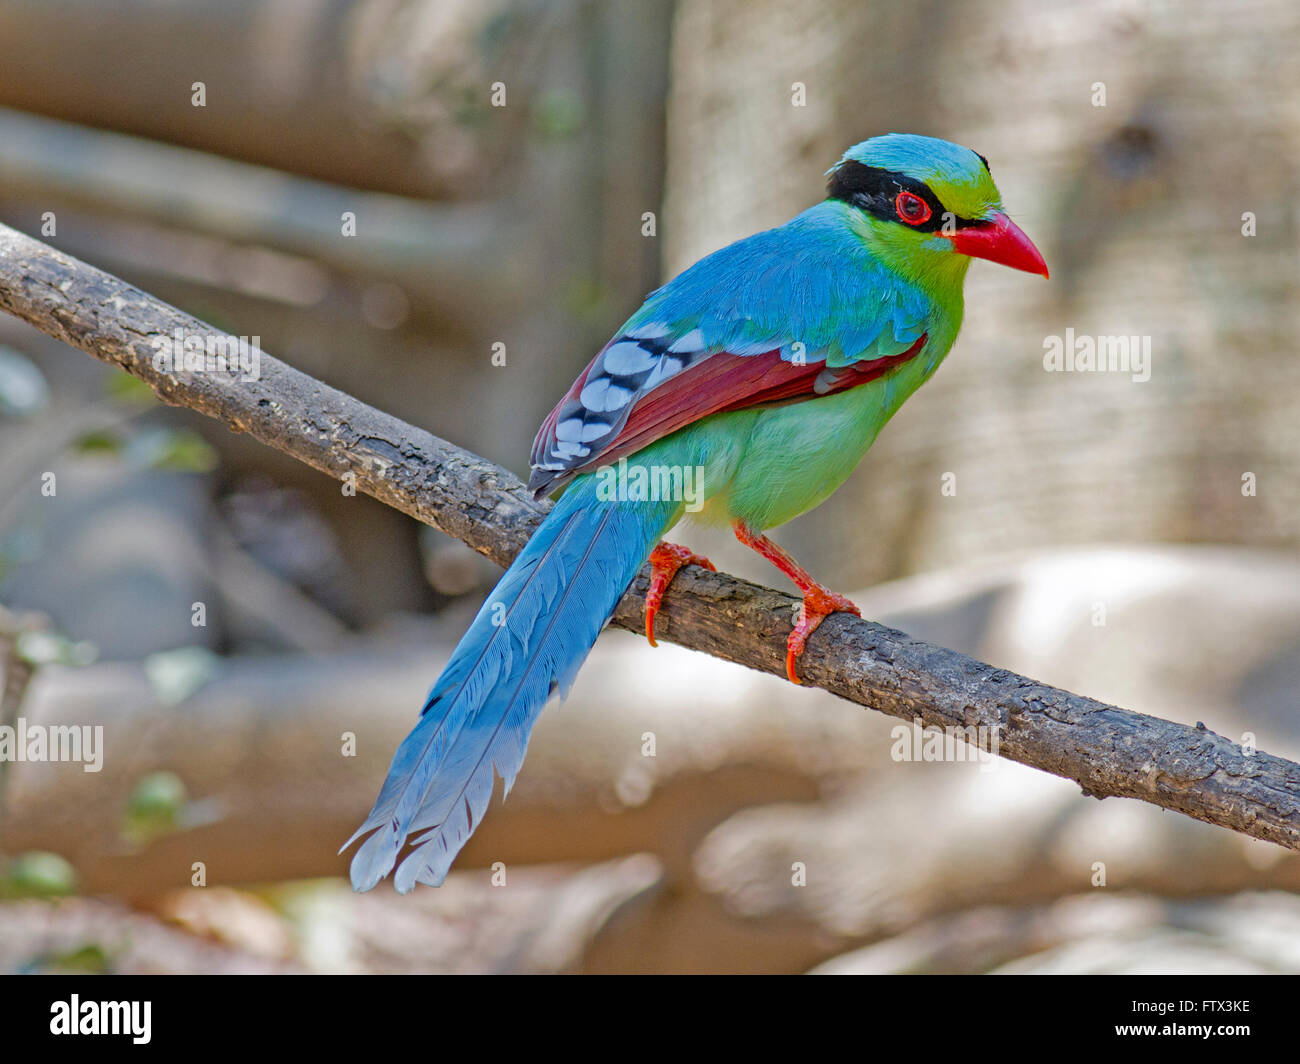 A Common Green Magpie perched on a small branch in the forest in Thailand Stock Photo